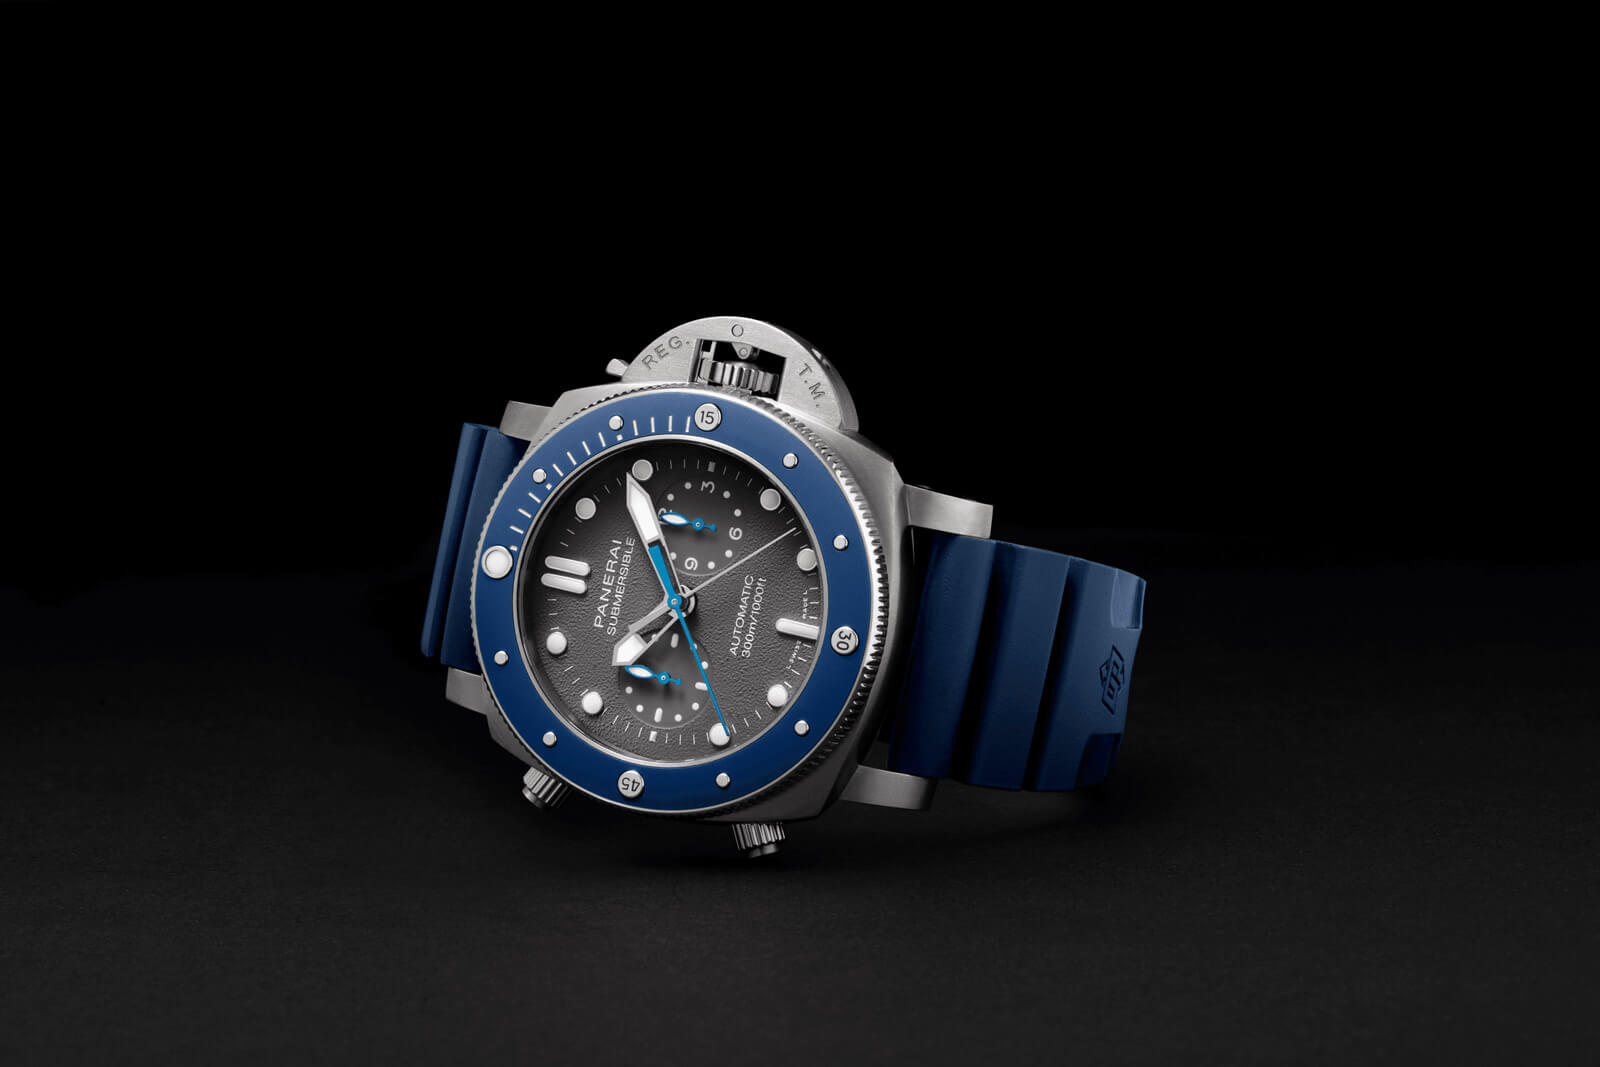 SIHH 2019 - Panerai Submersible editions